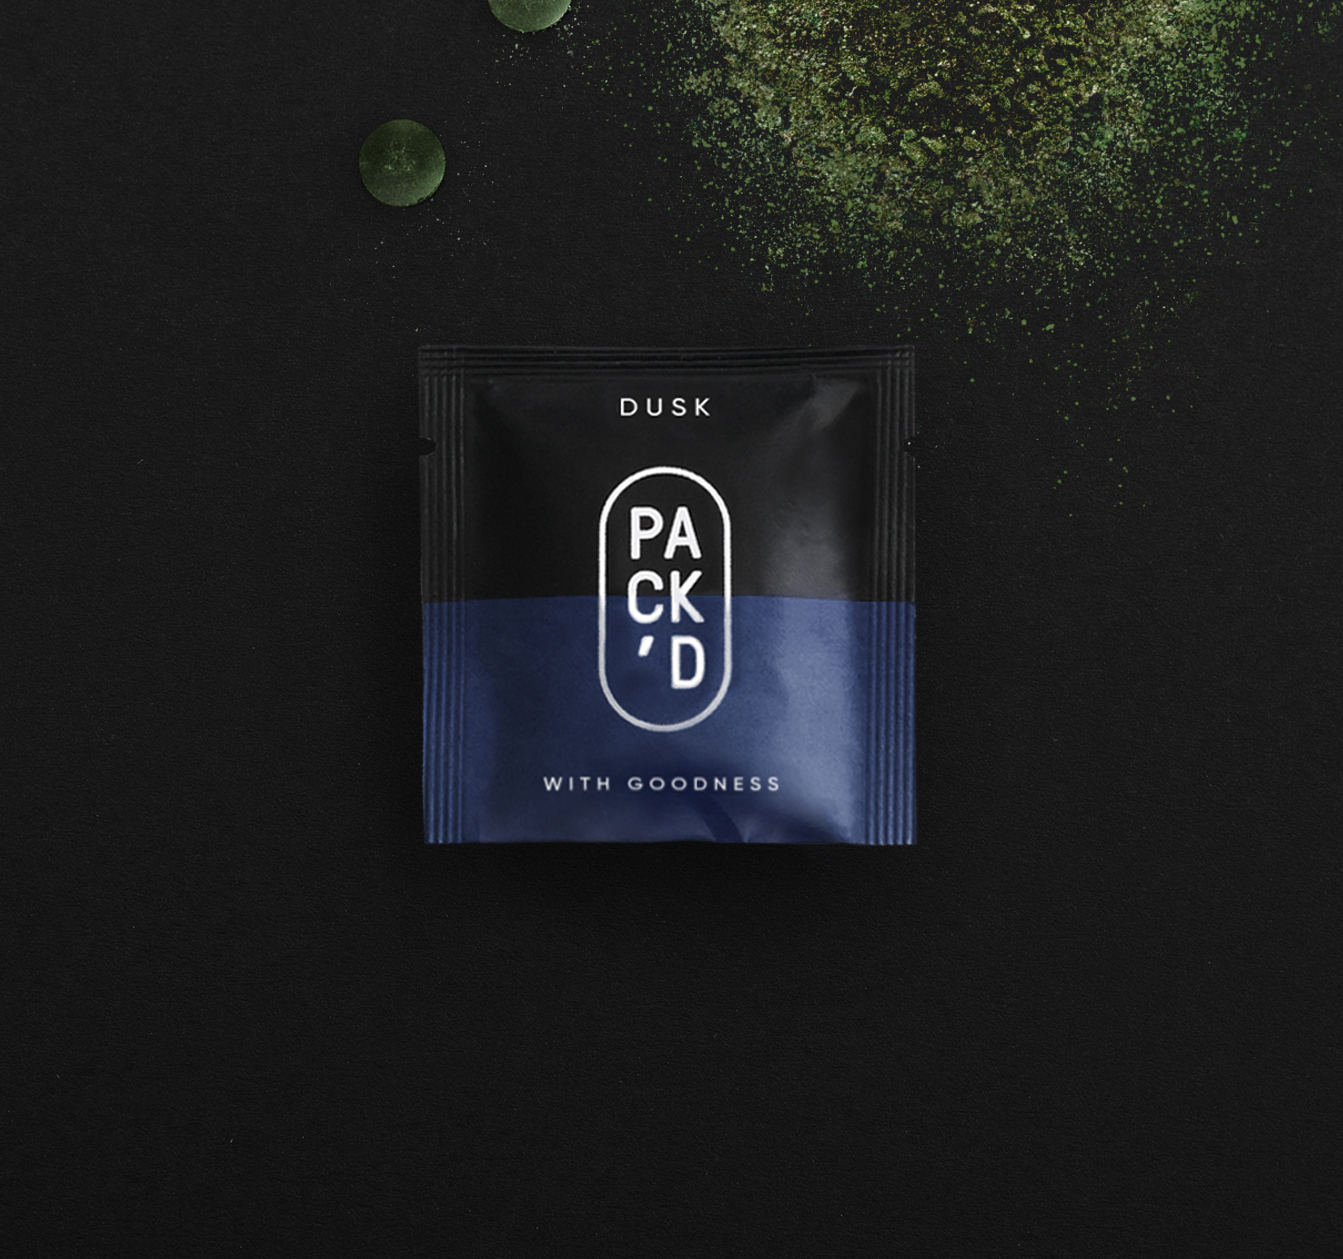 Your Daily Dose of Essential High Quality Supplements / World Brand & Packaging Design Society